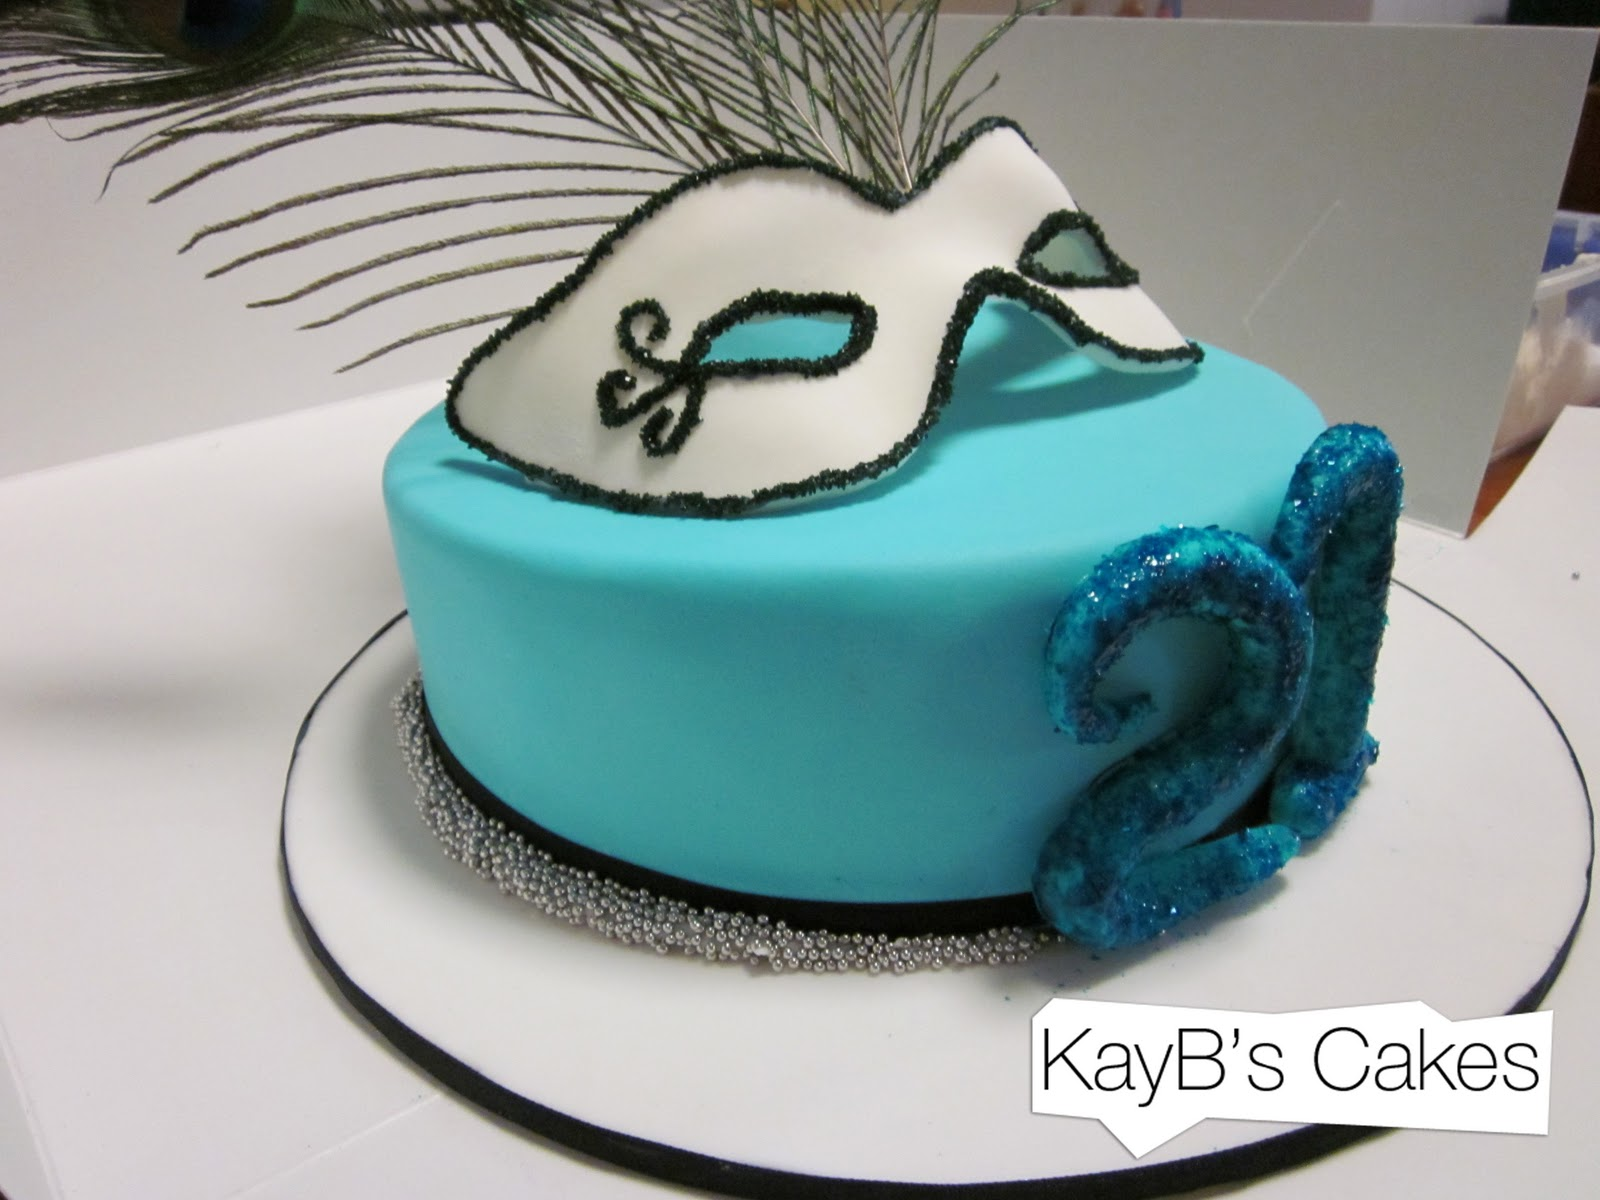 Kaybs Cakes Masquerade Cake And Pretty Peacock Feathers